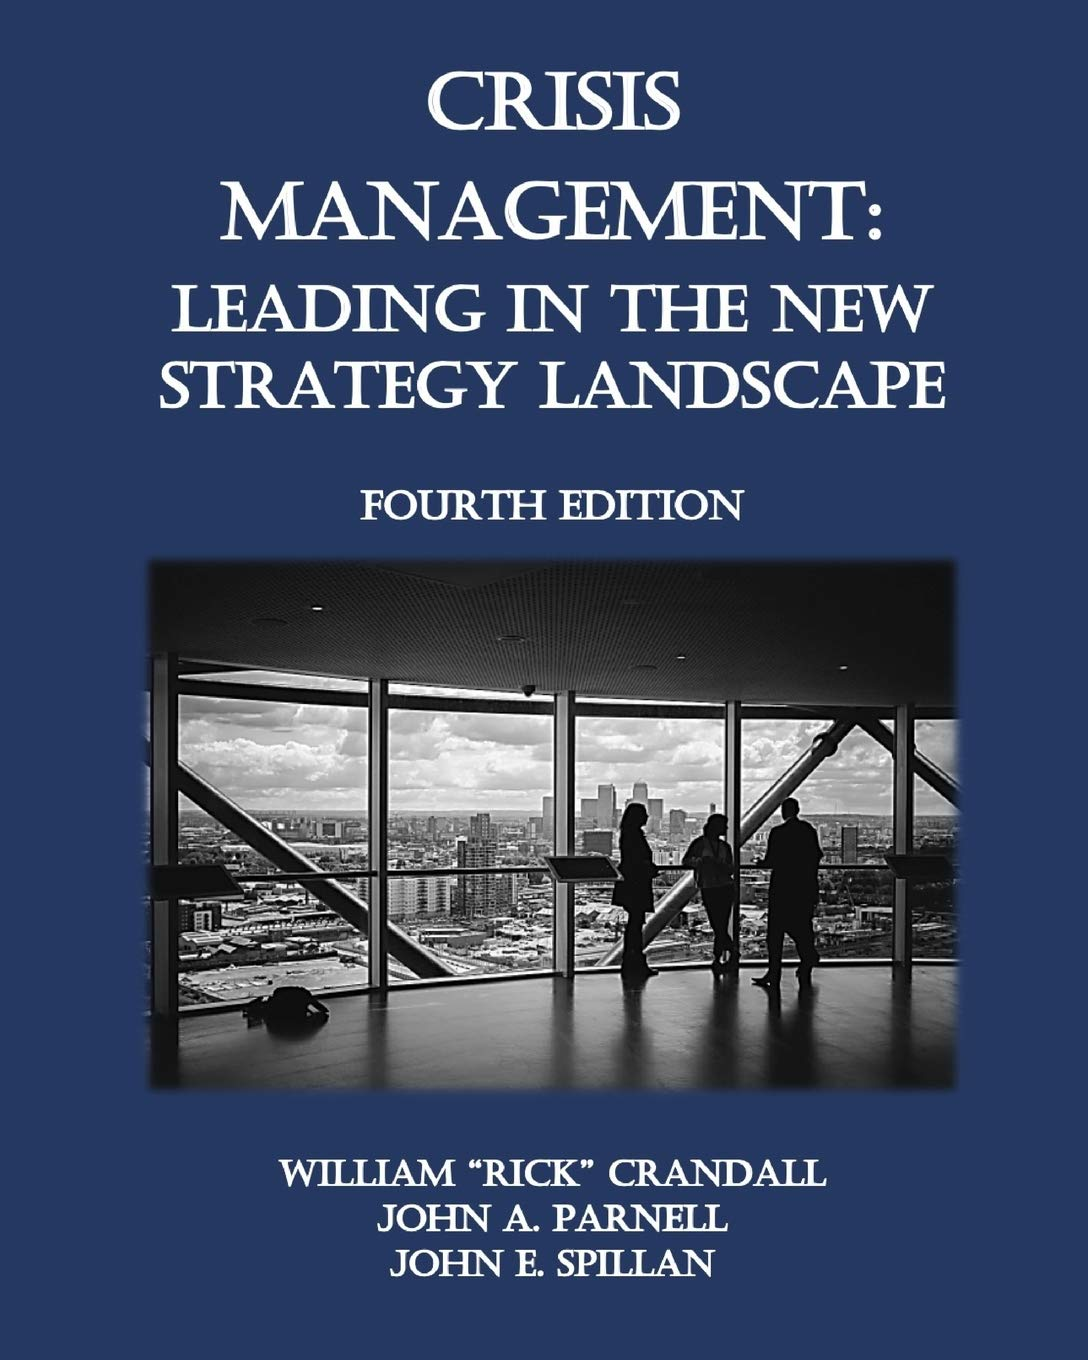 Crisis Management: Leading in the New Strategy Landscape by William Rick